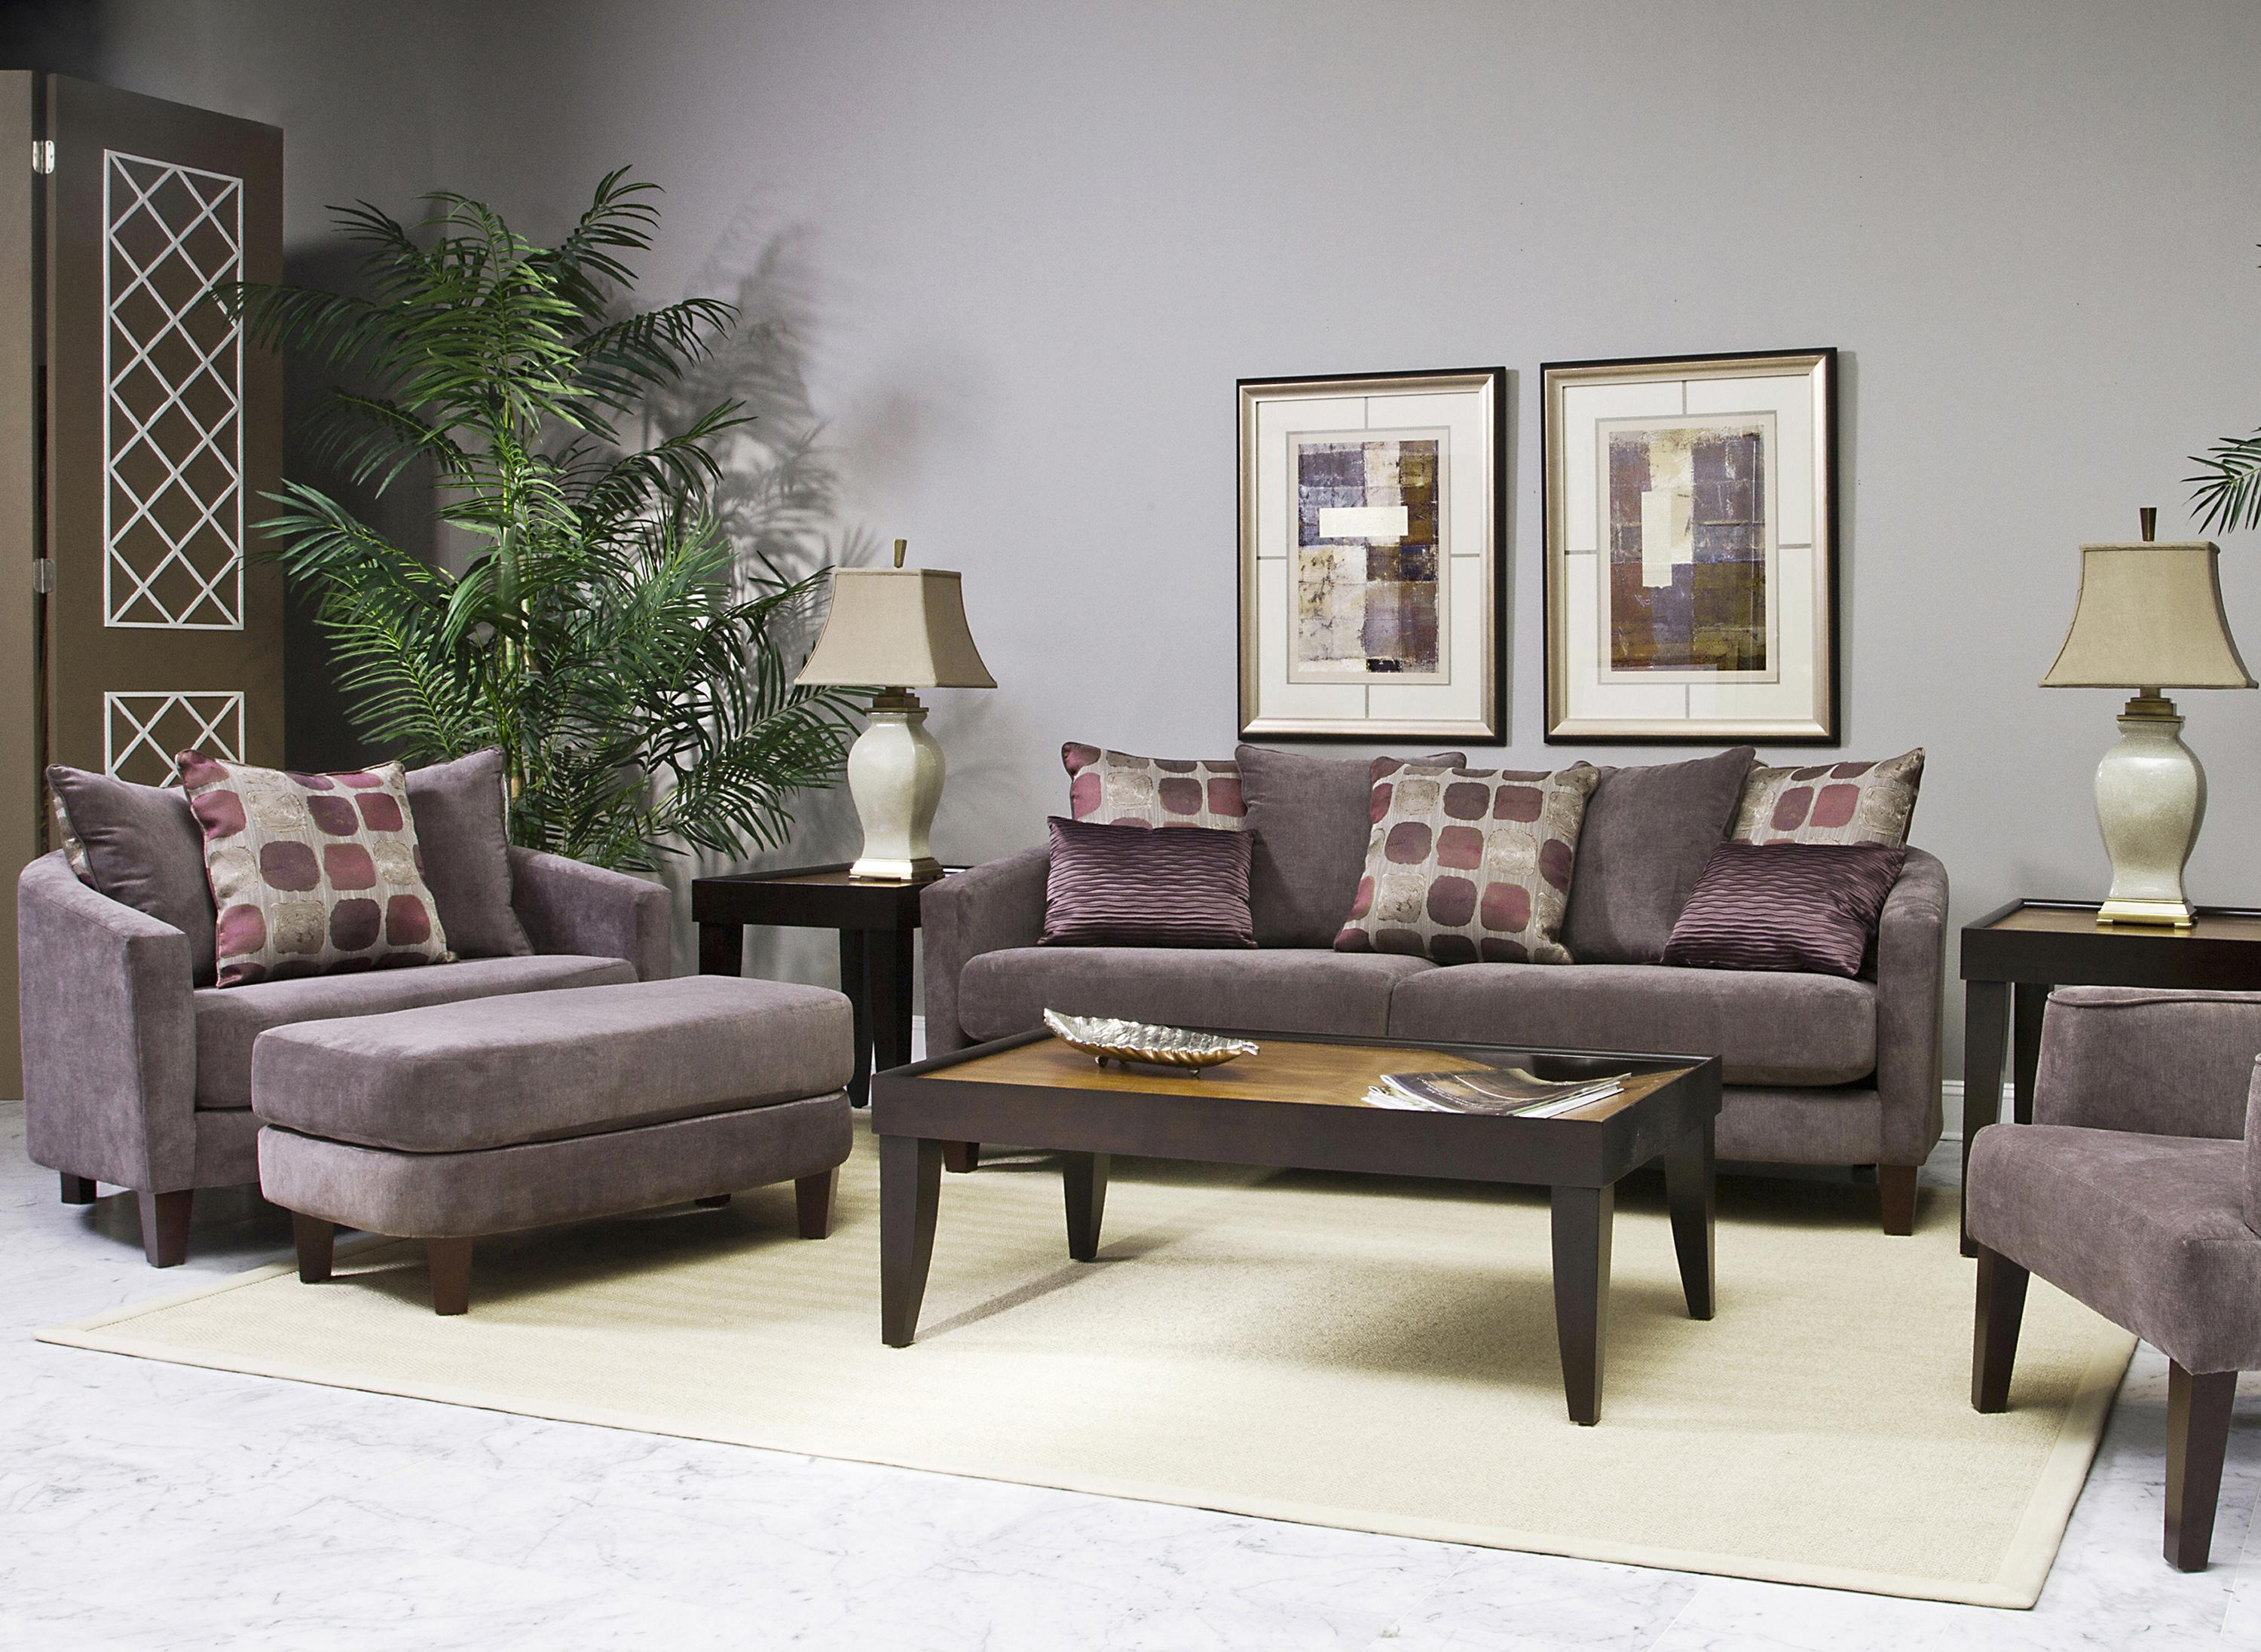 Fairmont designs zoey stationary living room group dunk for Living room furniture groups